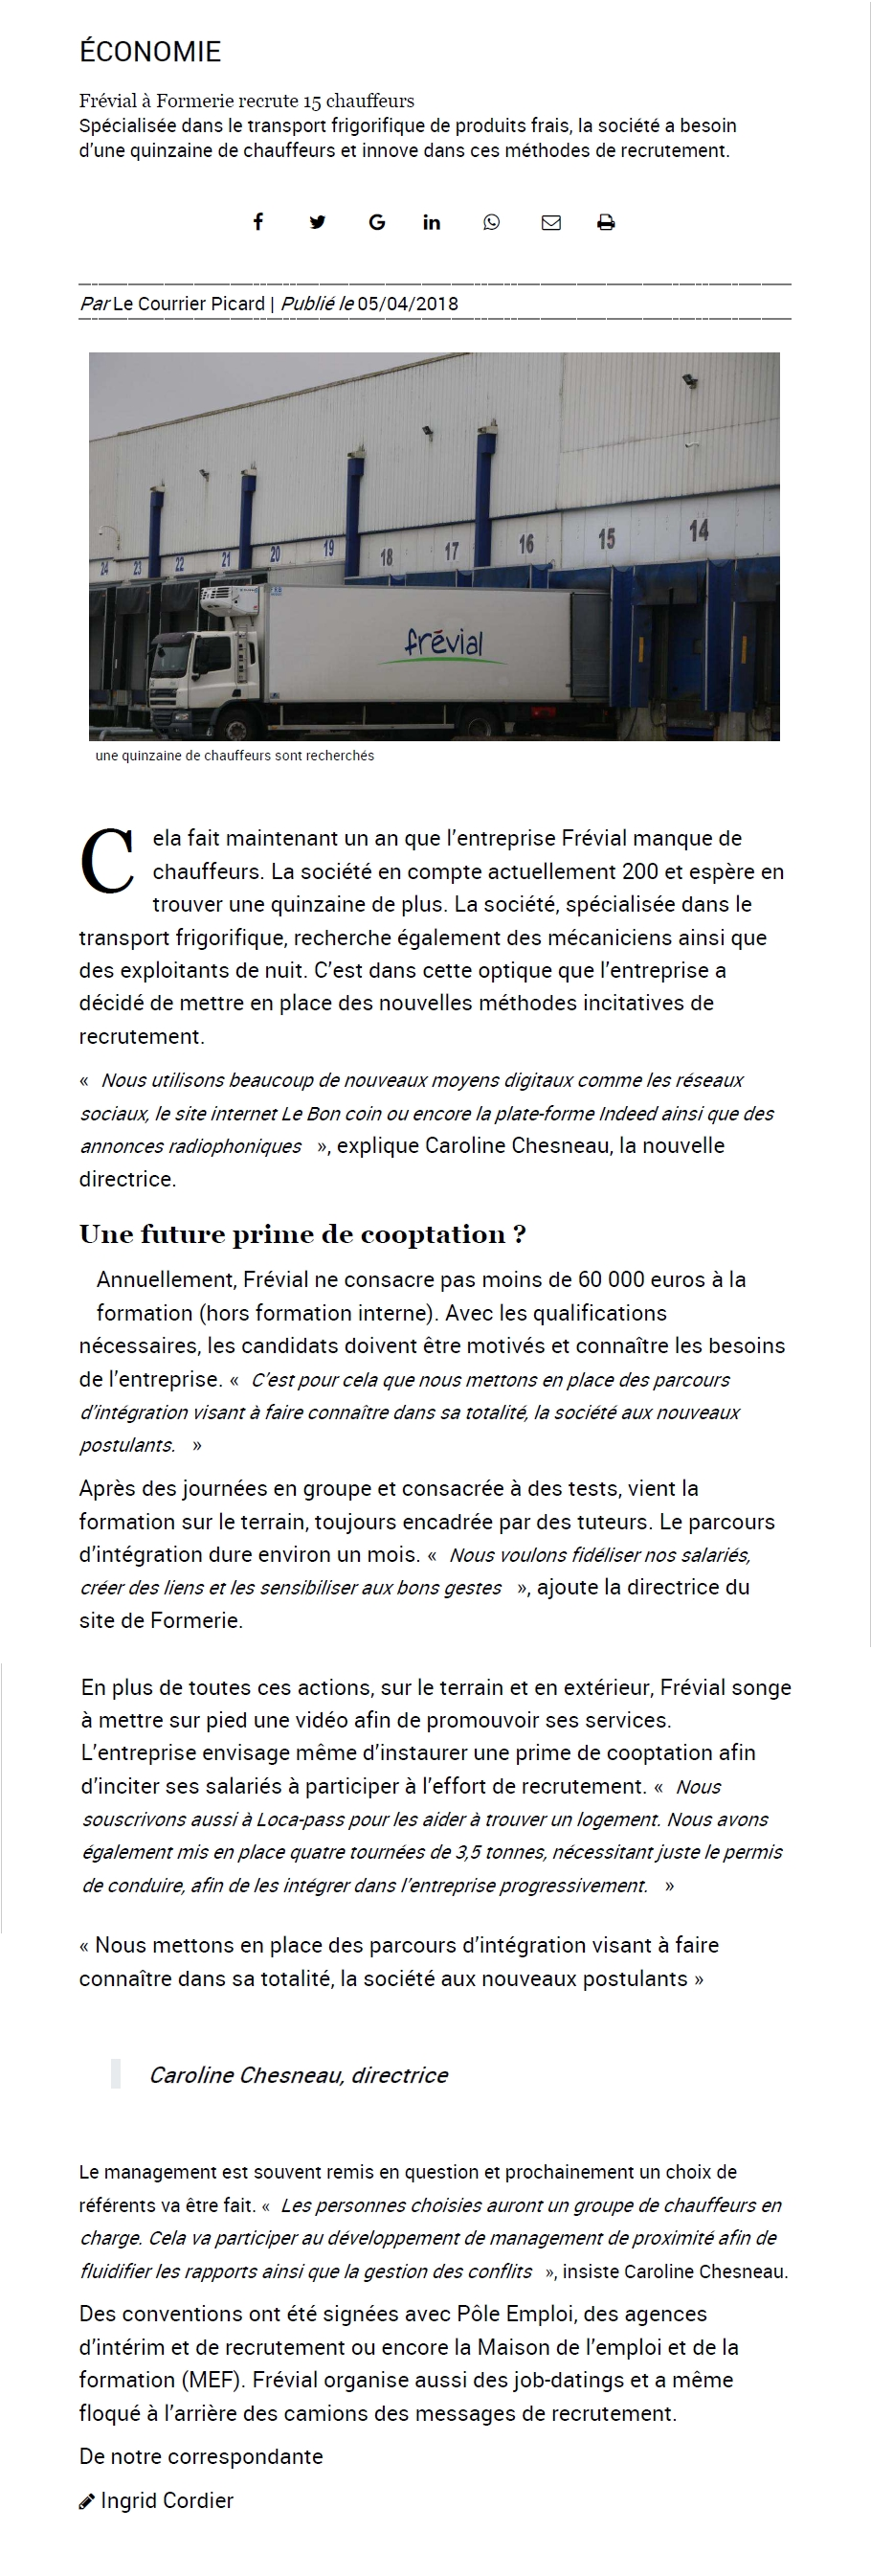 Frevial - Courrier Picard 05avr2018